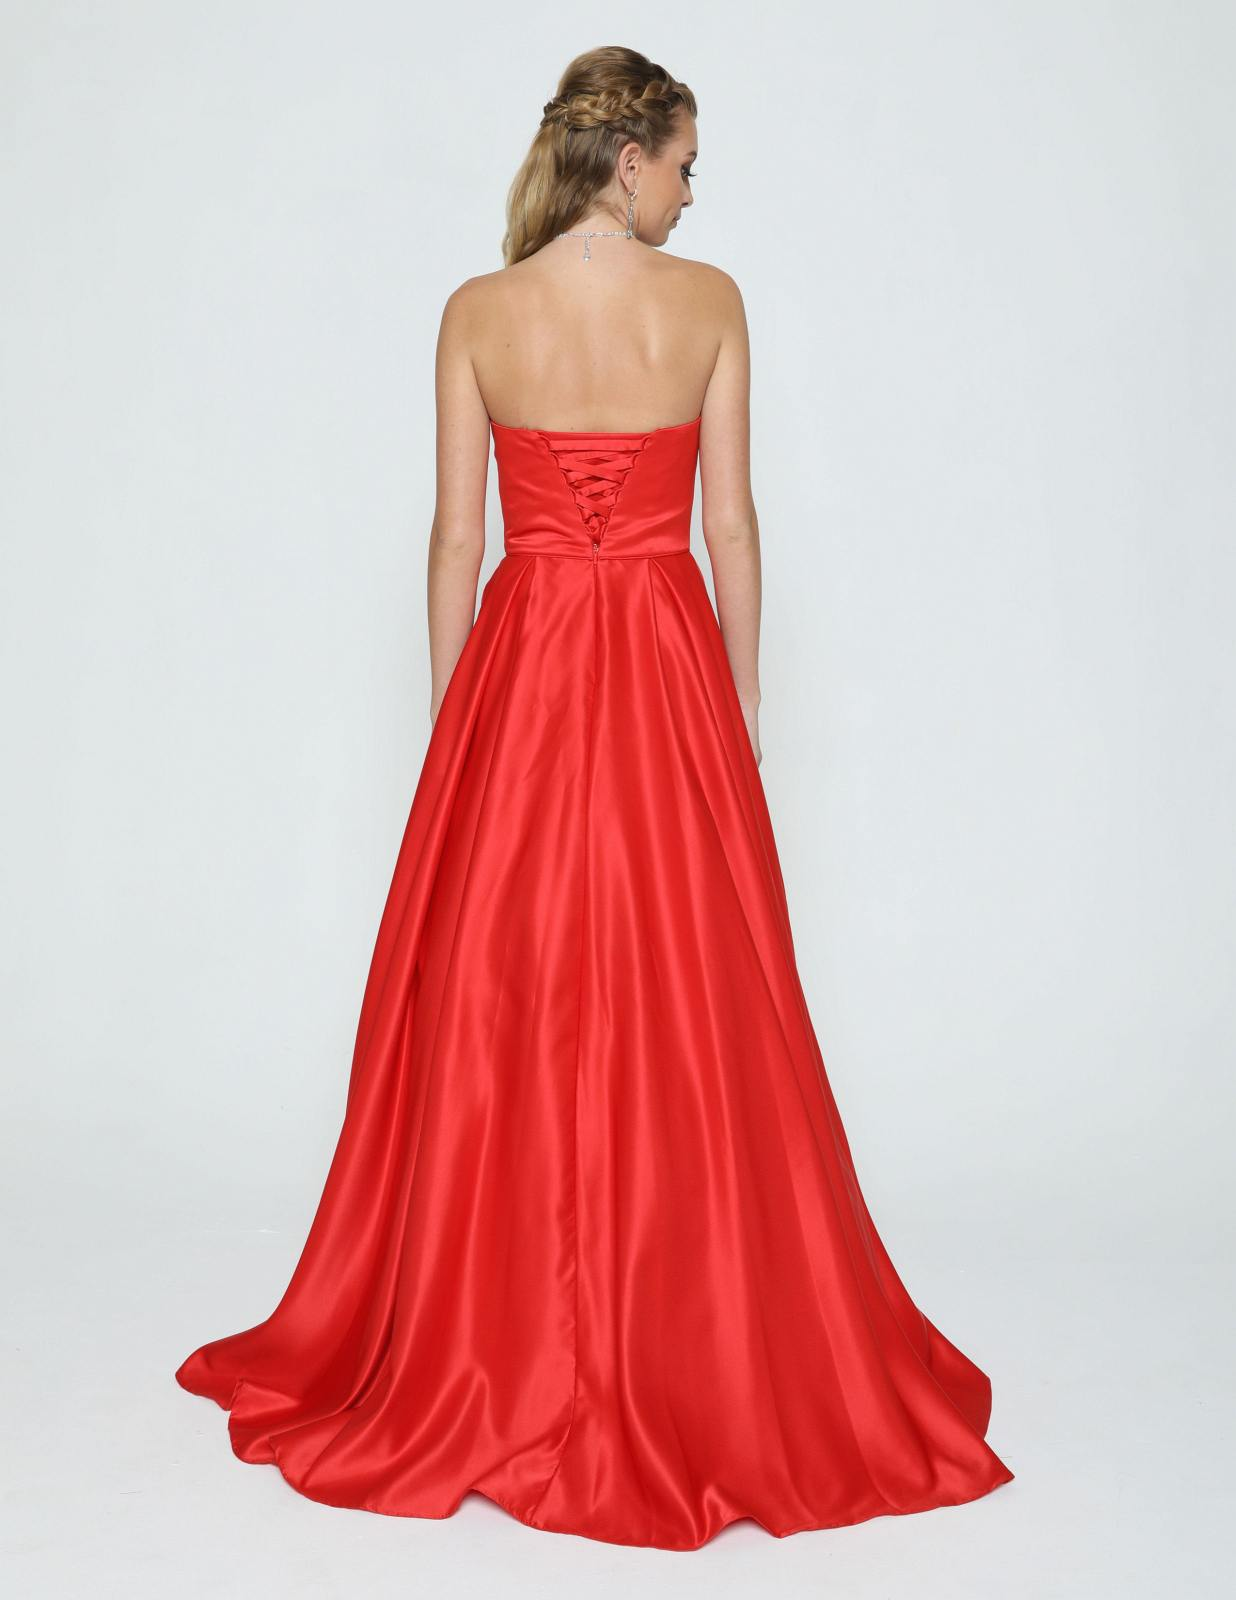 64a984707 Juliet 372 Red Strapless Prom Gown with Beaded Pockets ...